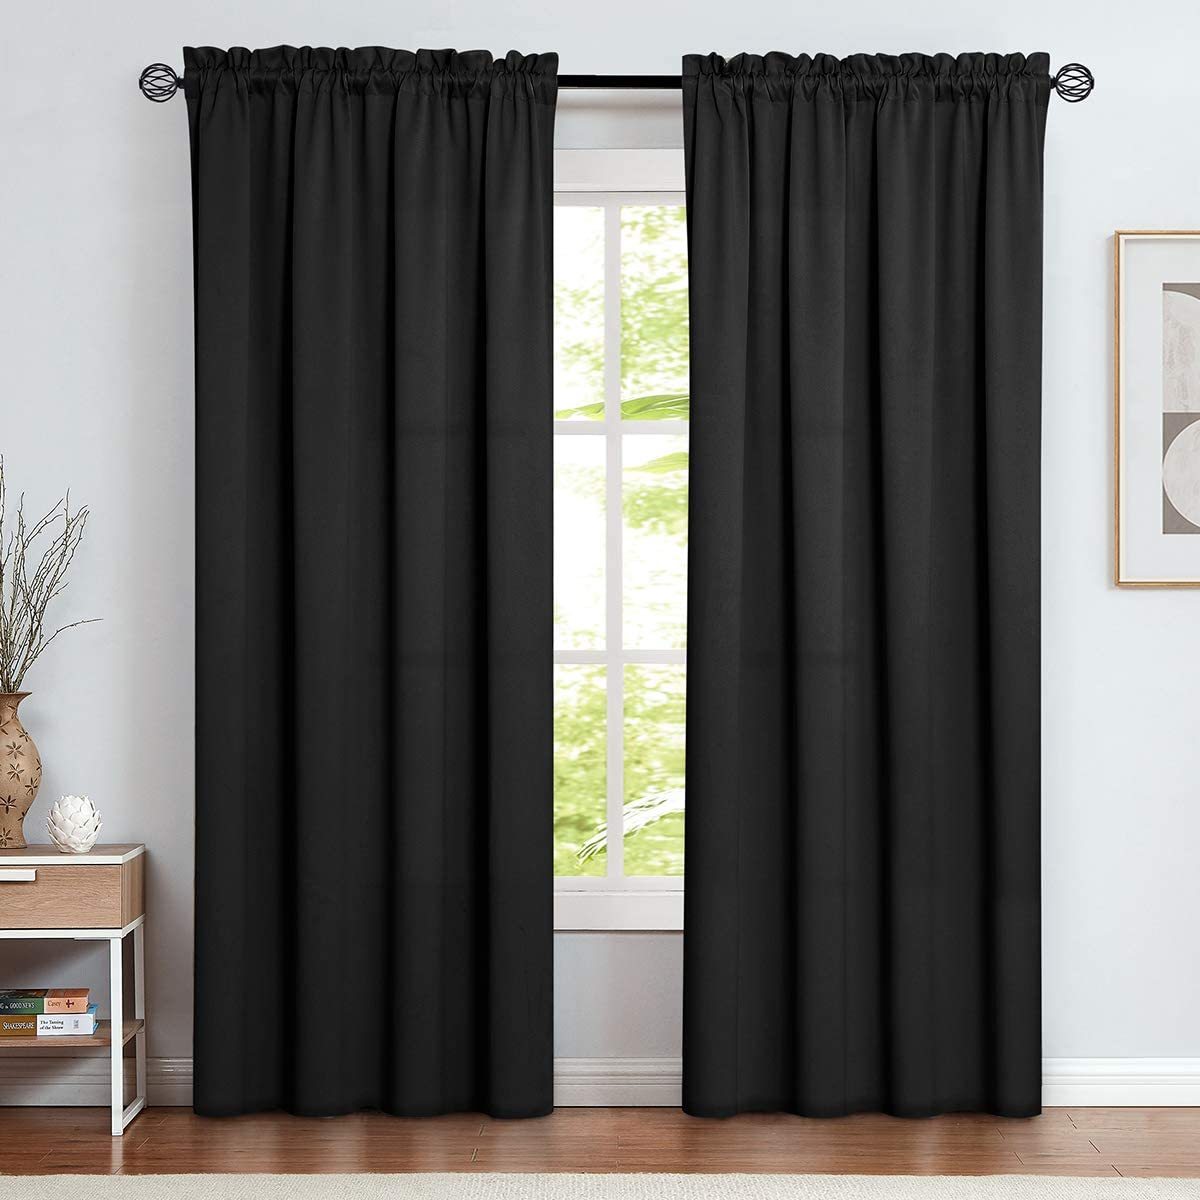 Amazon Com Vangao Rod Pocket Curtains Black 84 Inches Long Drapes For Living Room Darkening Moderate Blackout Window Treatment For Bedroom Triple Weave 2 Panels Kitchen Dining